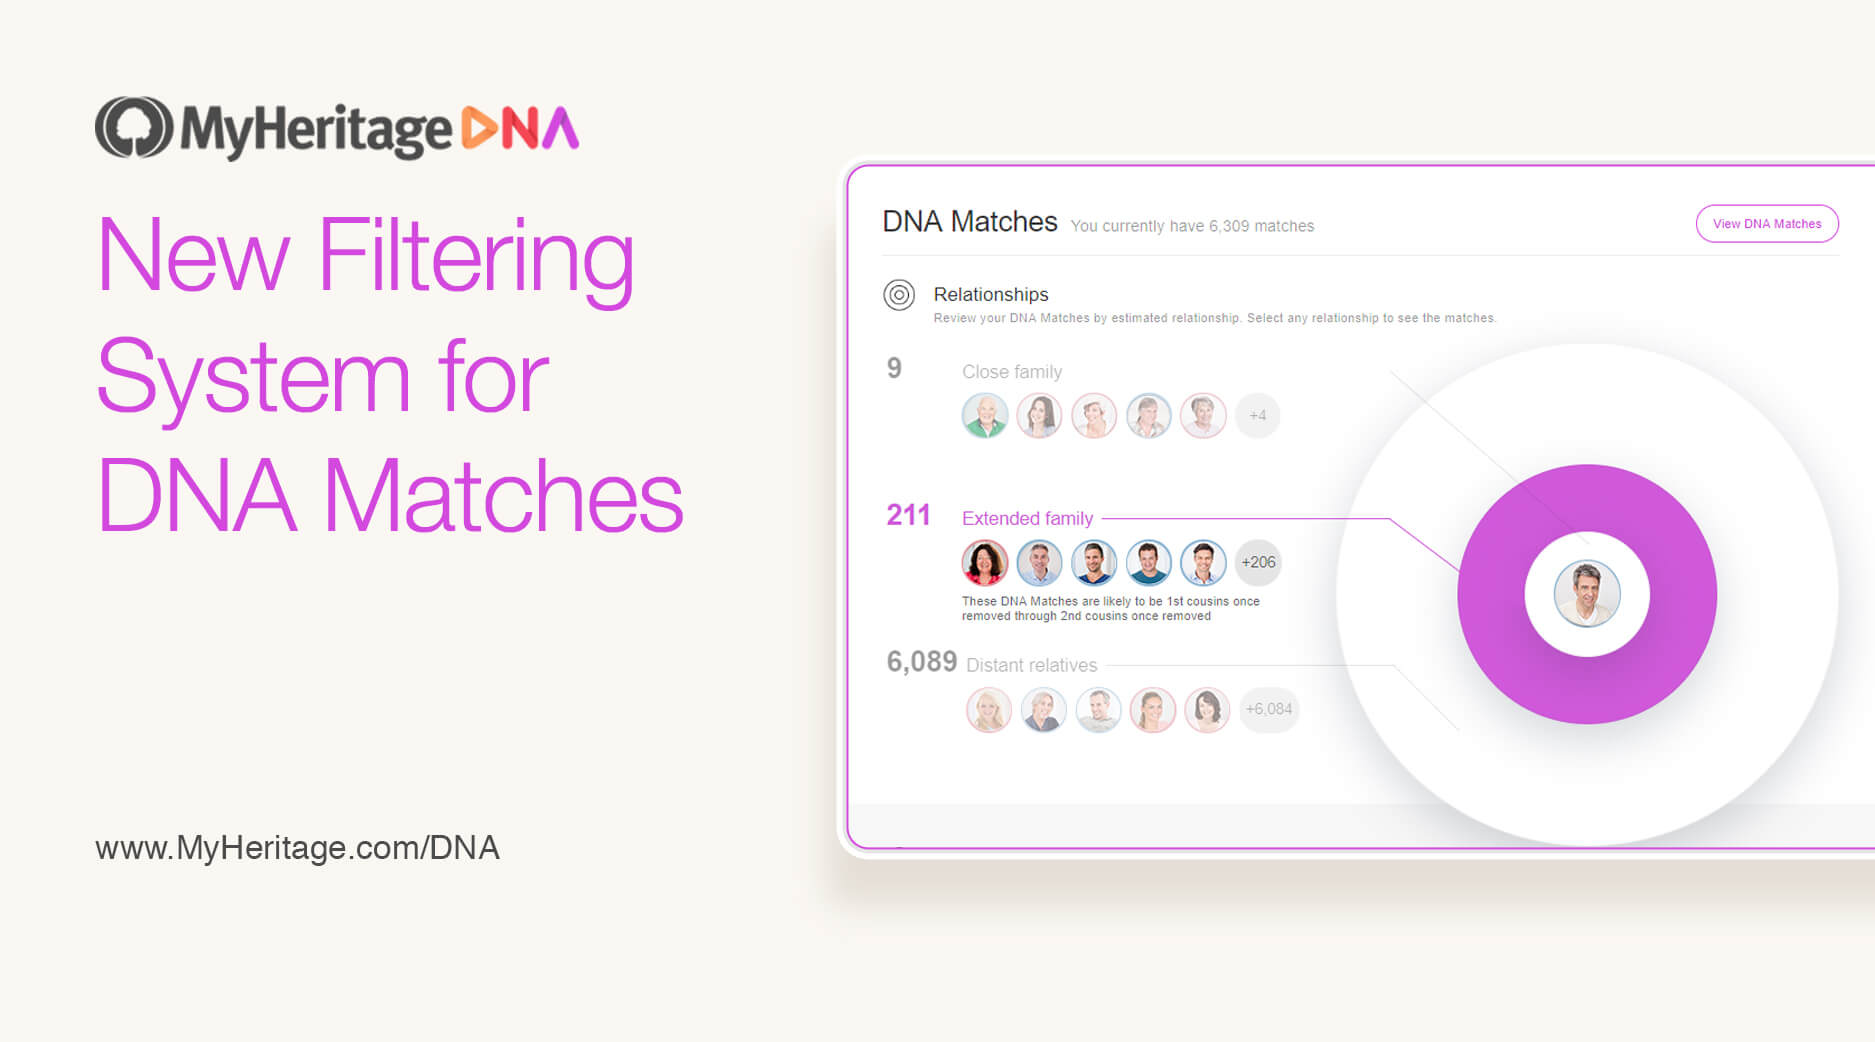 New Filtering System for DNA Matches